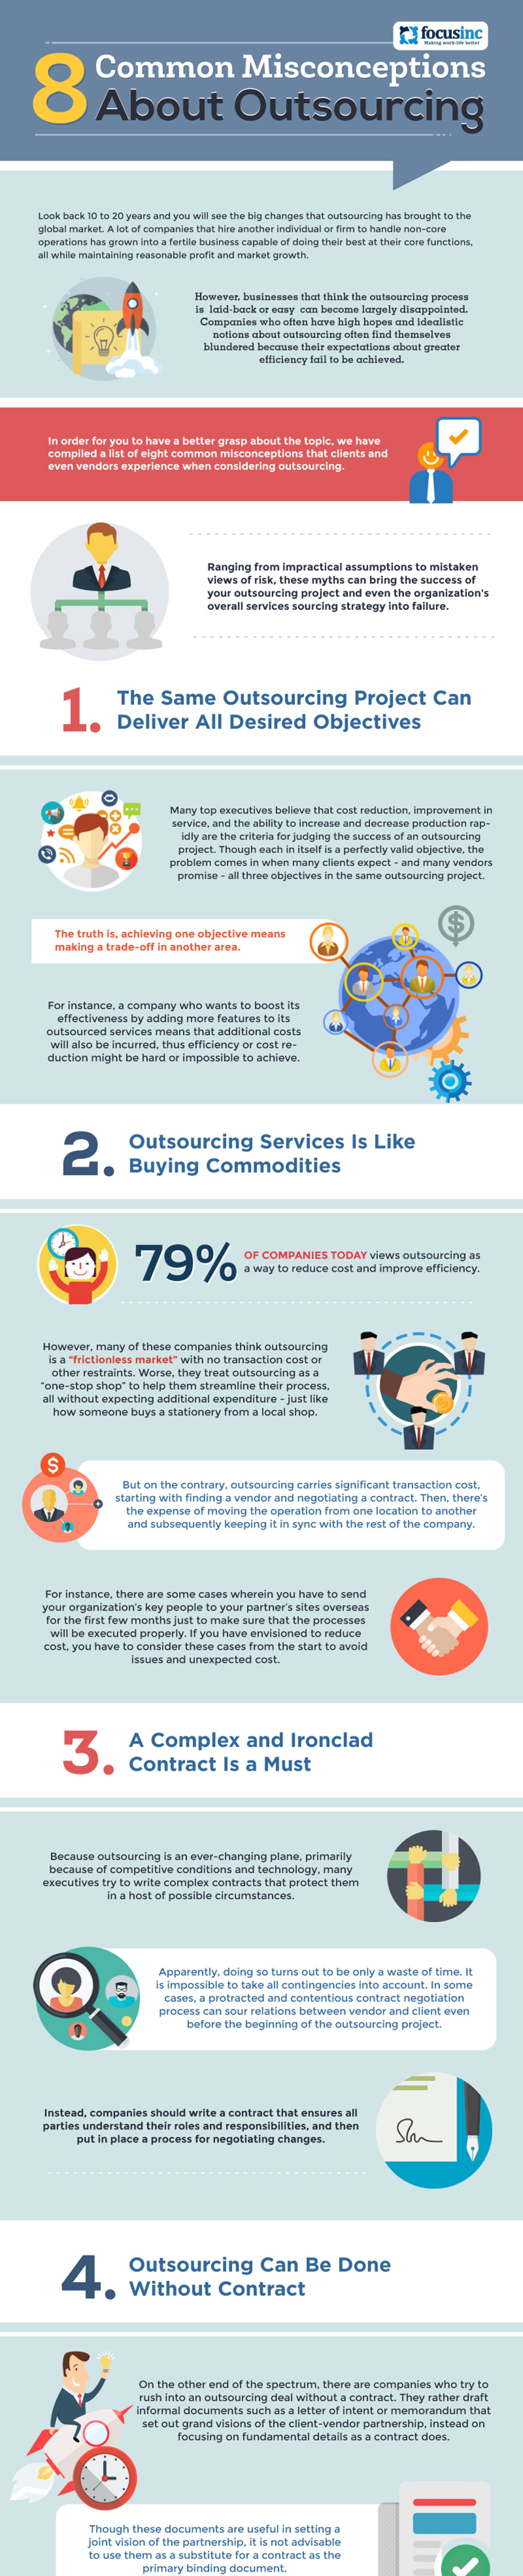 8-common-misconceptions-about-outsourcing-hd-1